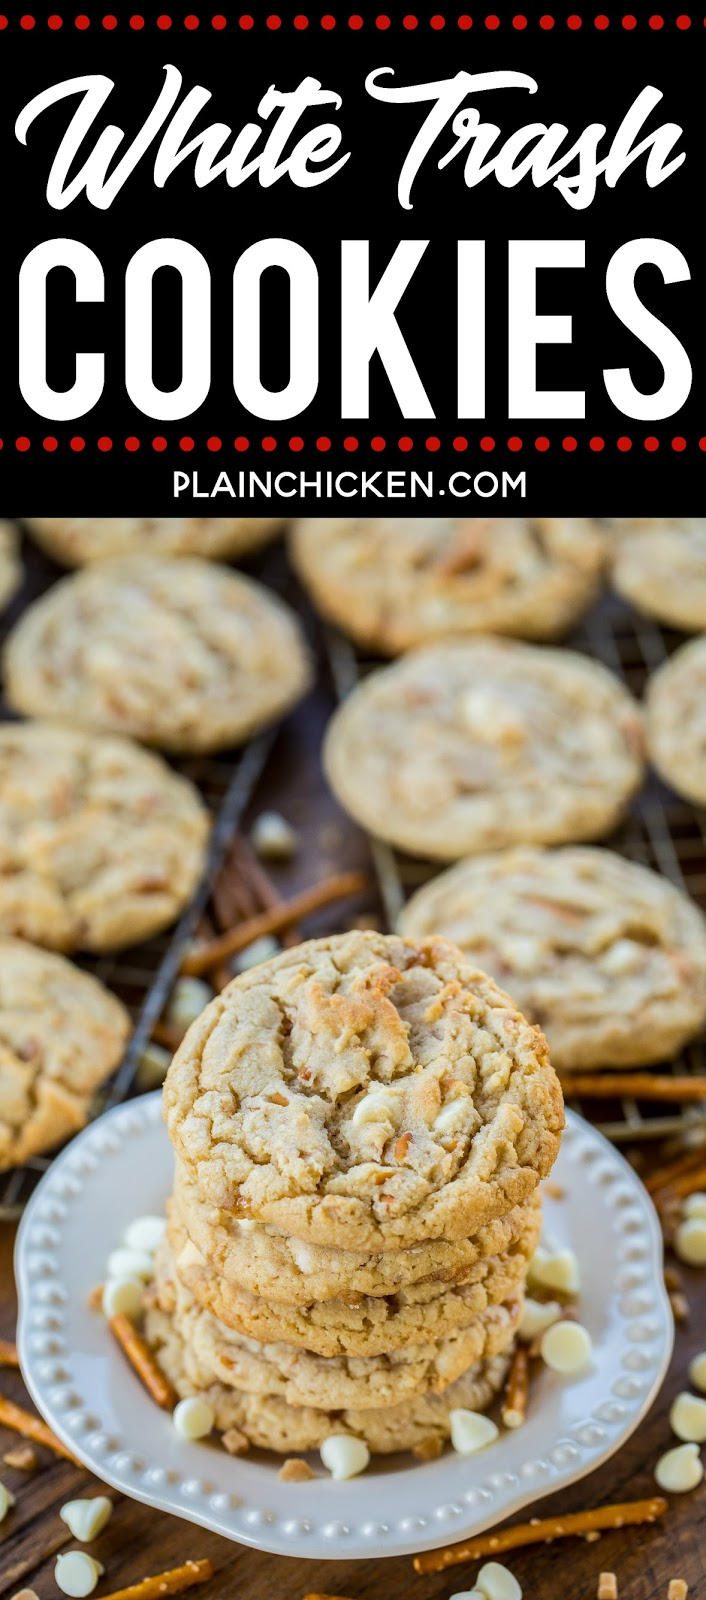 White Trash Cookies - cookies loaded with white chocolate chips, toffee bits and pretzels. Sweet & salty in every bite. Copycat recipe of my favorite cookie at a local bakery. These are DANGEROUSLY delicious! These cookies never last long in our house! #cookies #whitechocolate #chocolatechipcookies